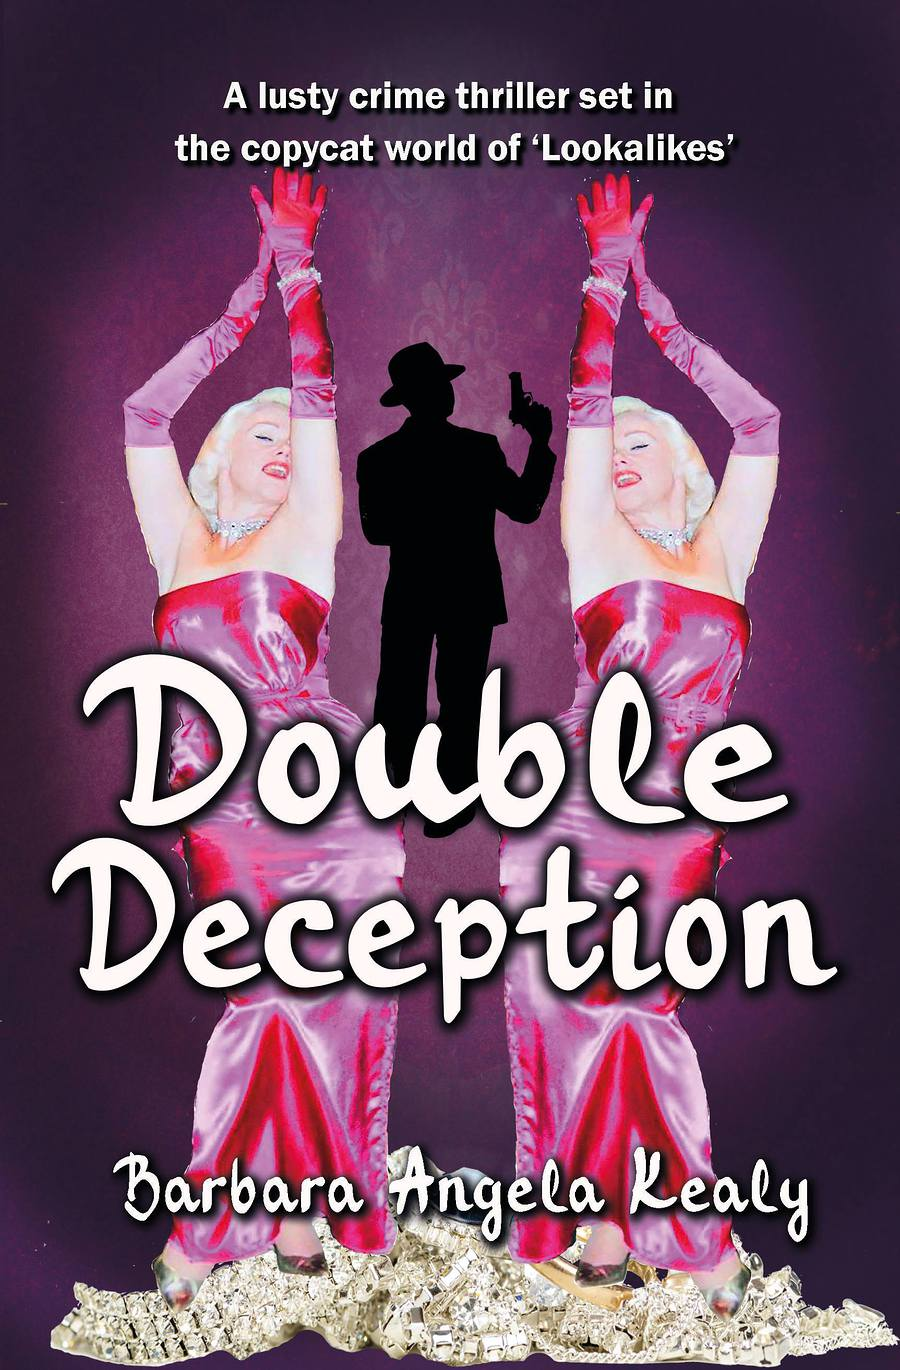 Double Deception. / Photography by James B Photography / Uploaded 15th February 2018 @ 10:45 PM